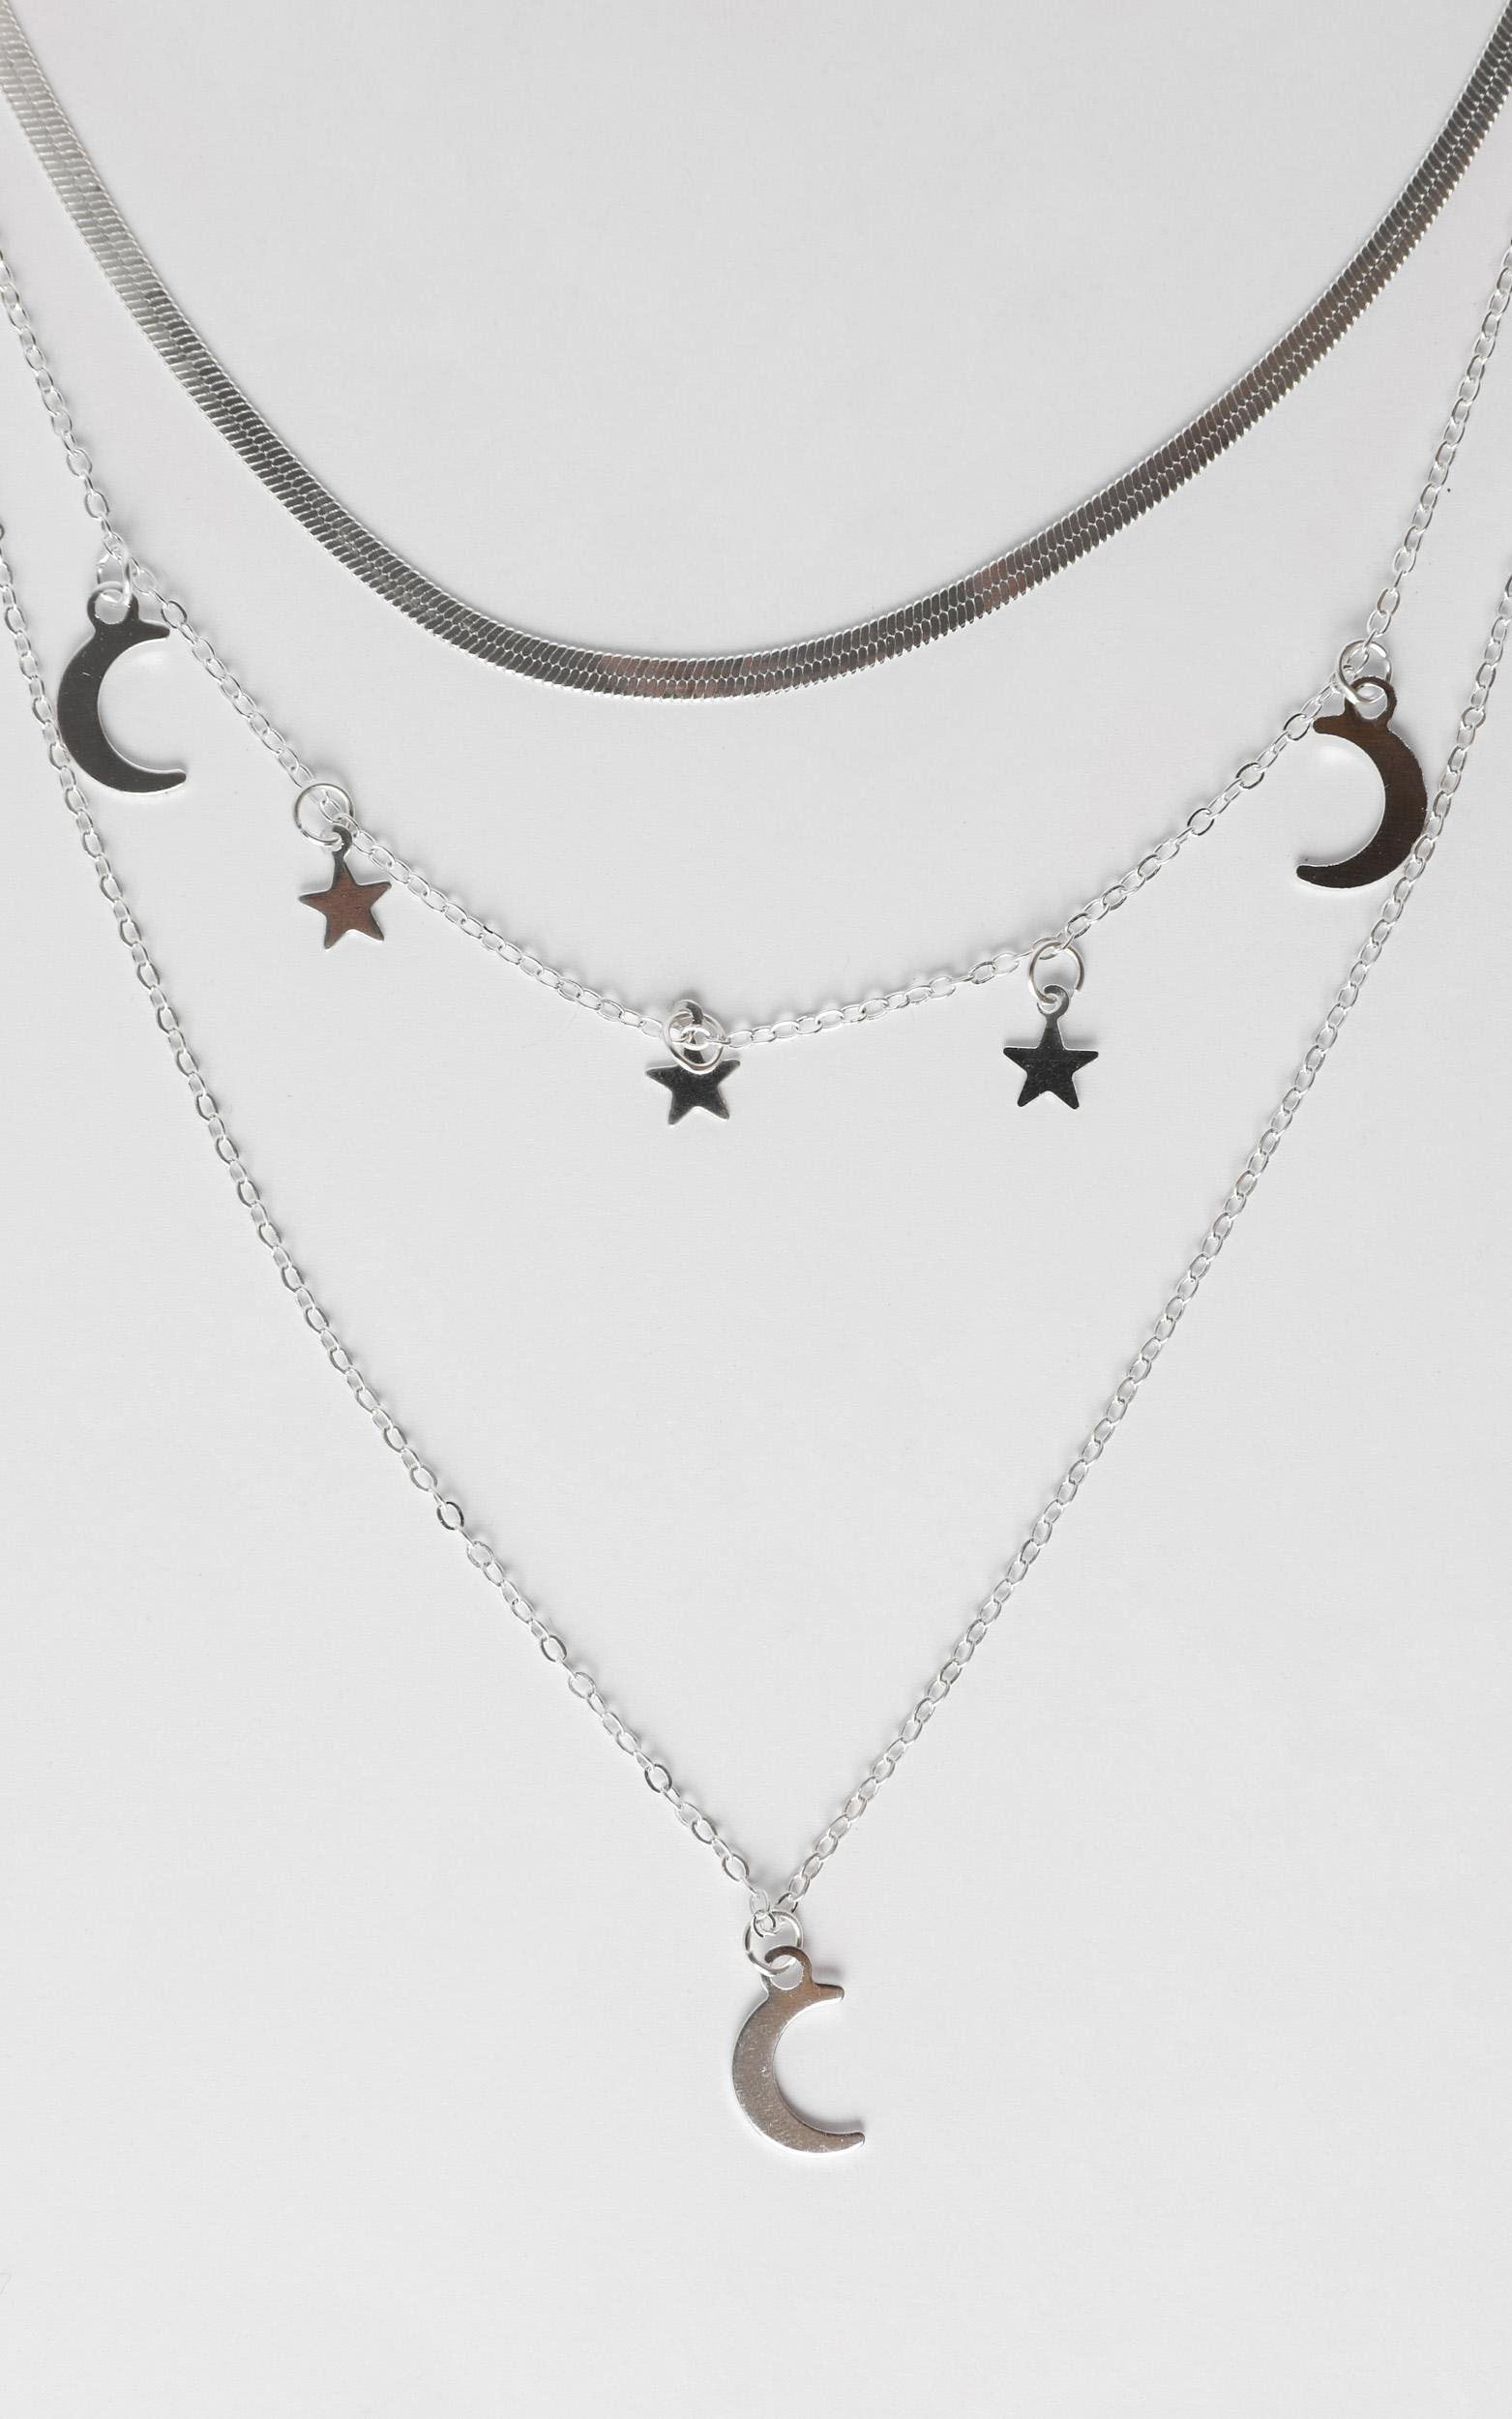 Cosmo Layered Necklace in Silver, , hi-res image number null